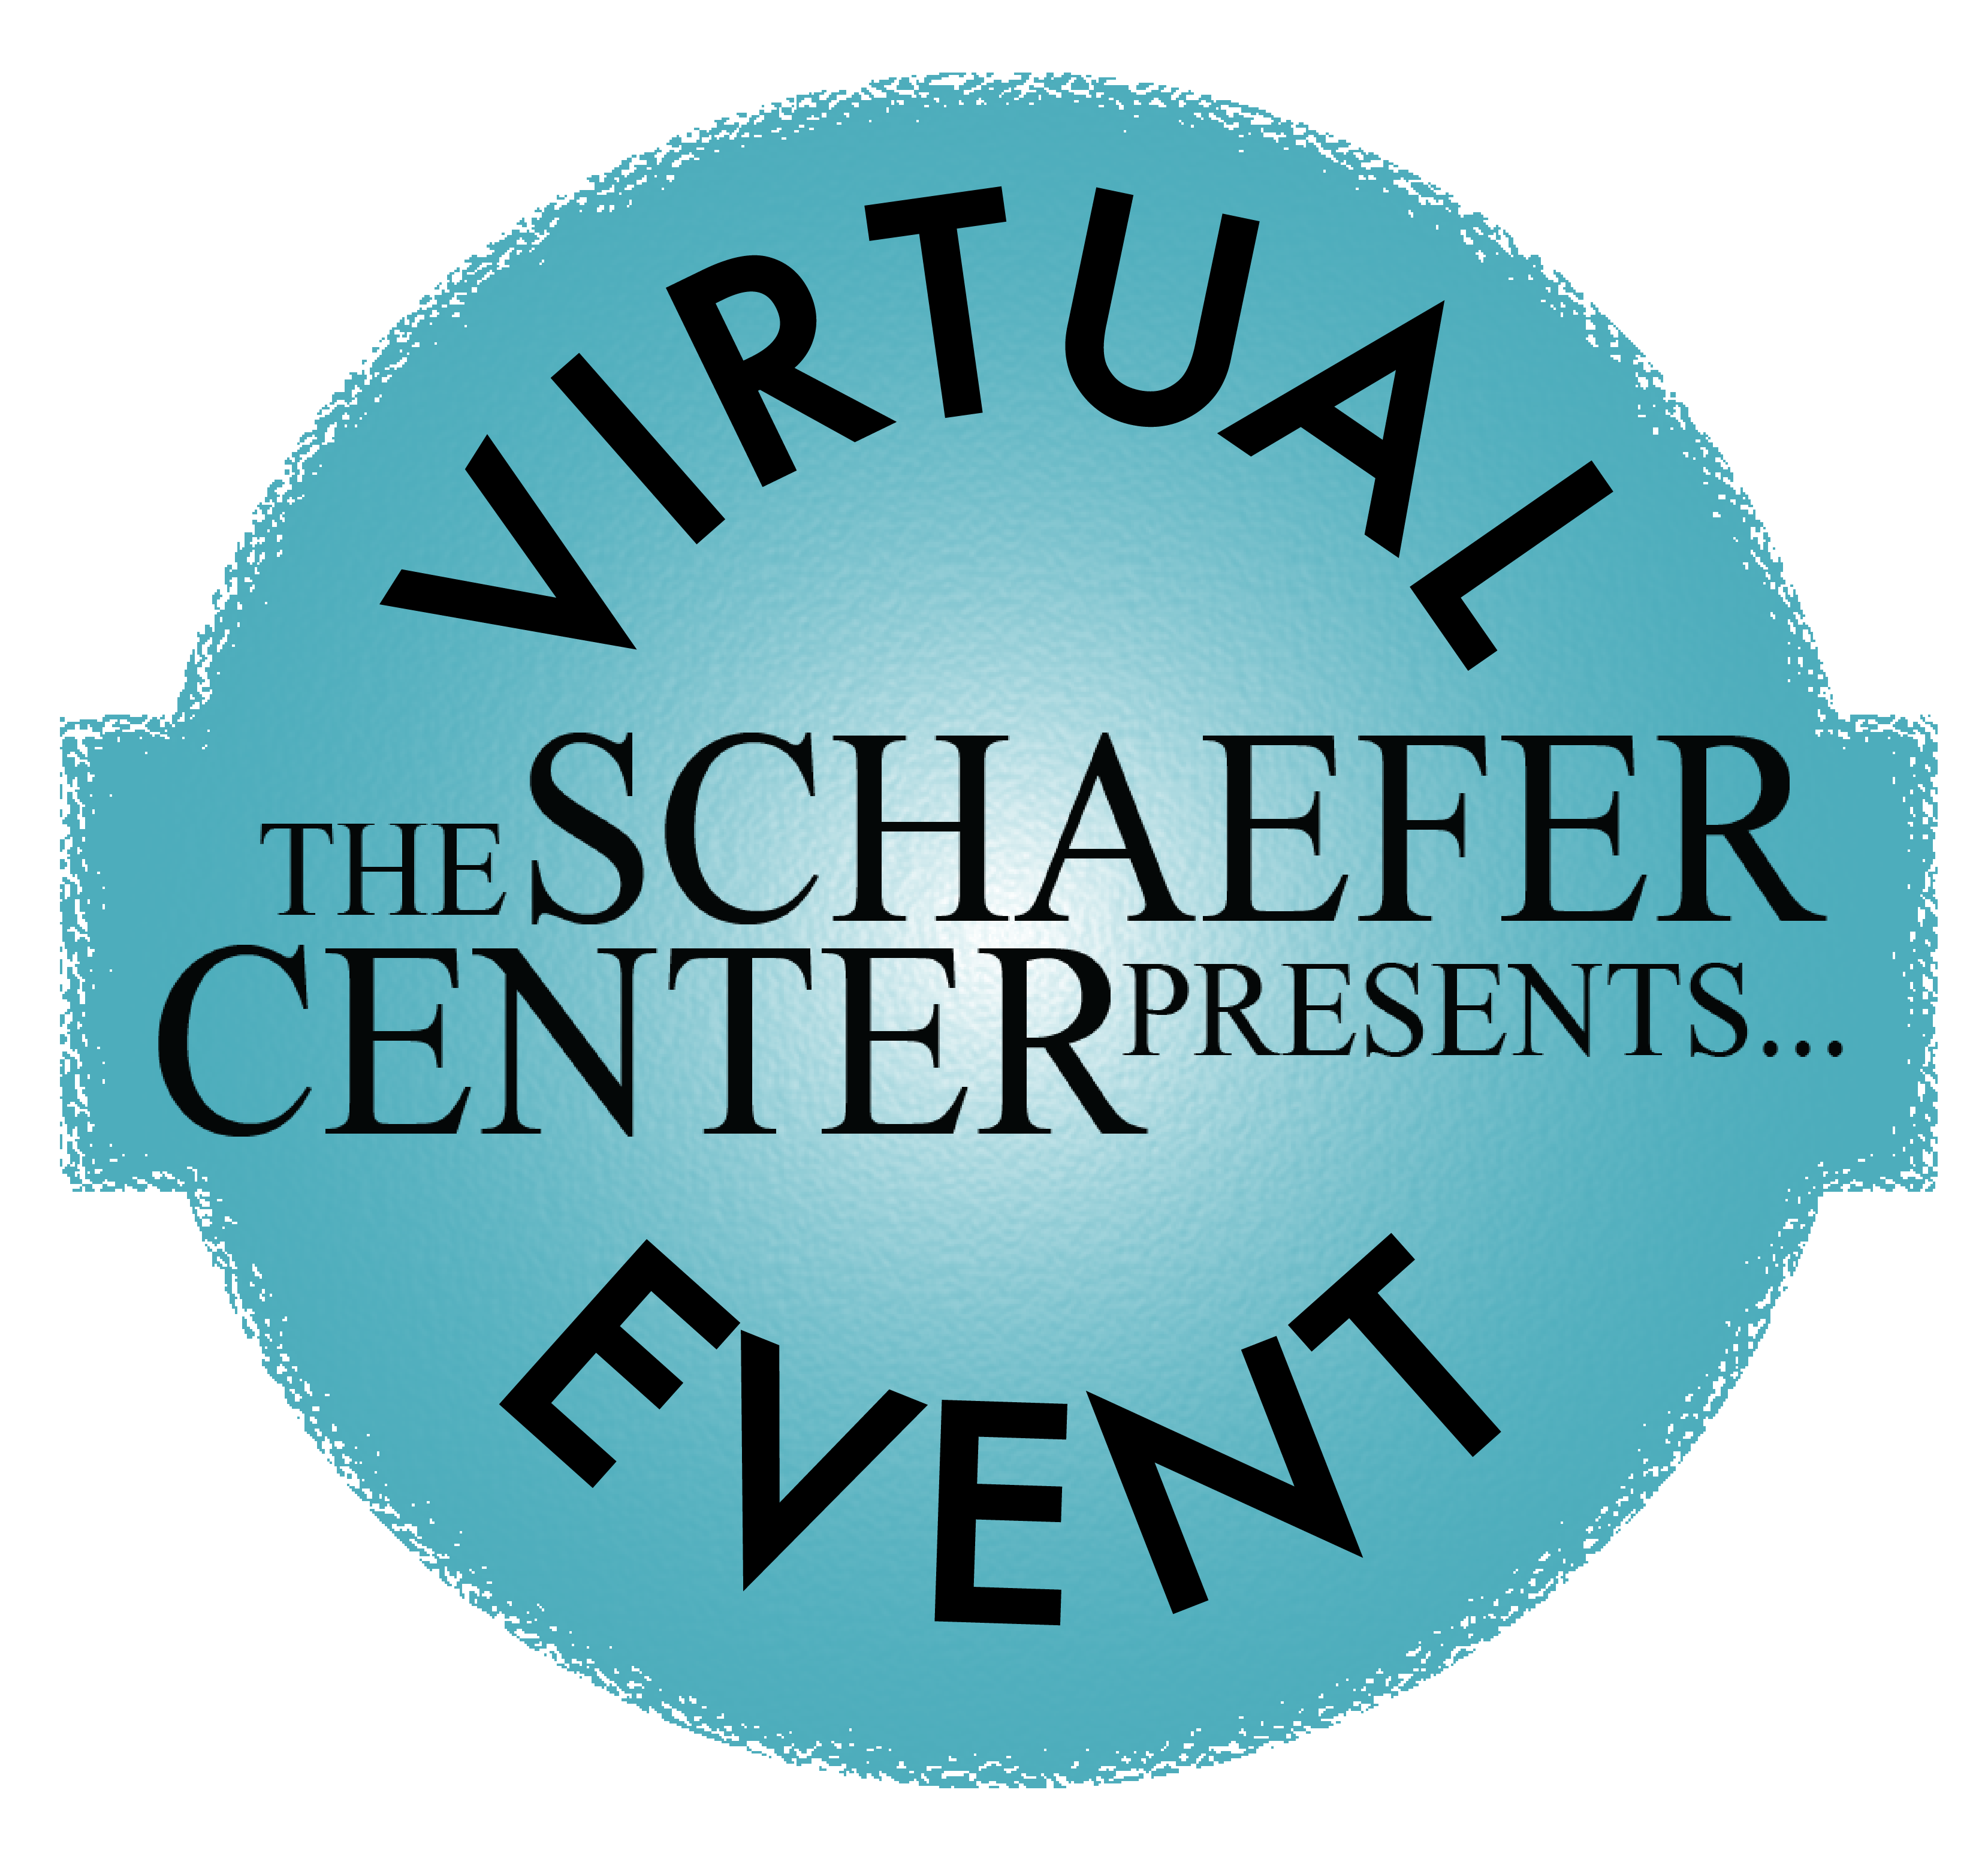 Schaefer Center Presents Virtual Event logo